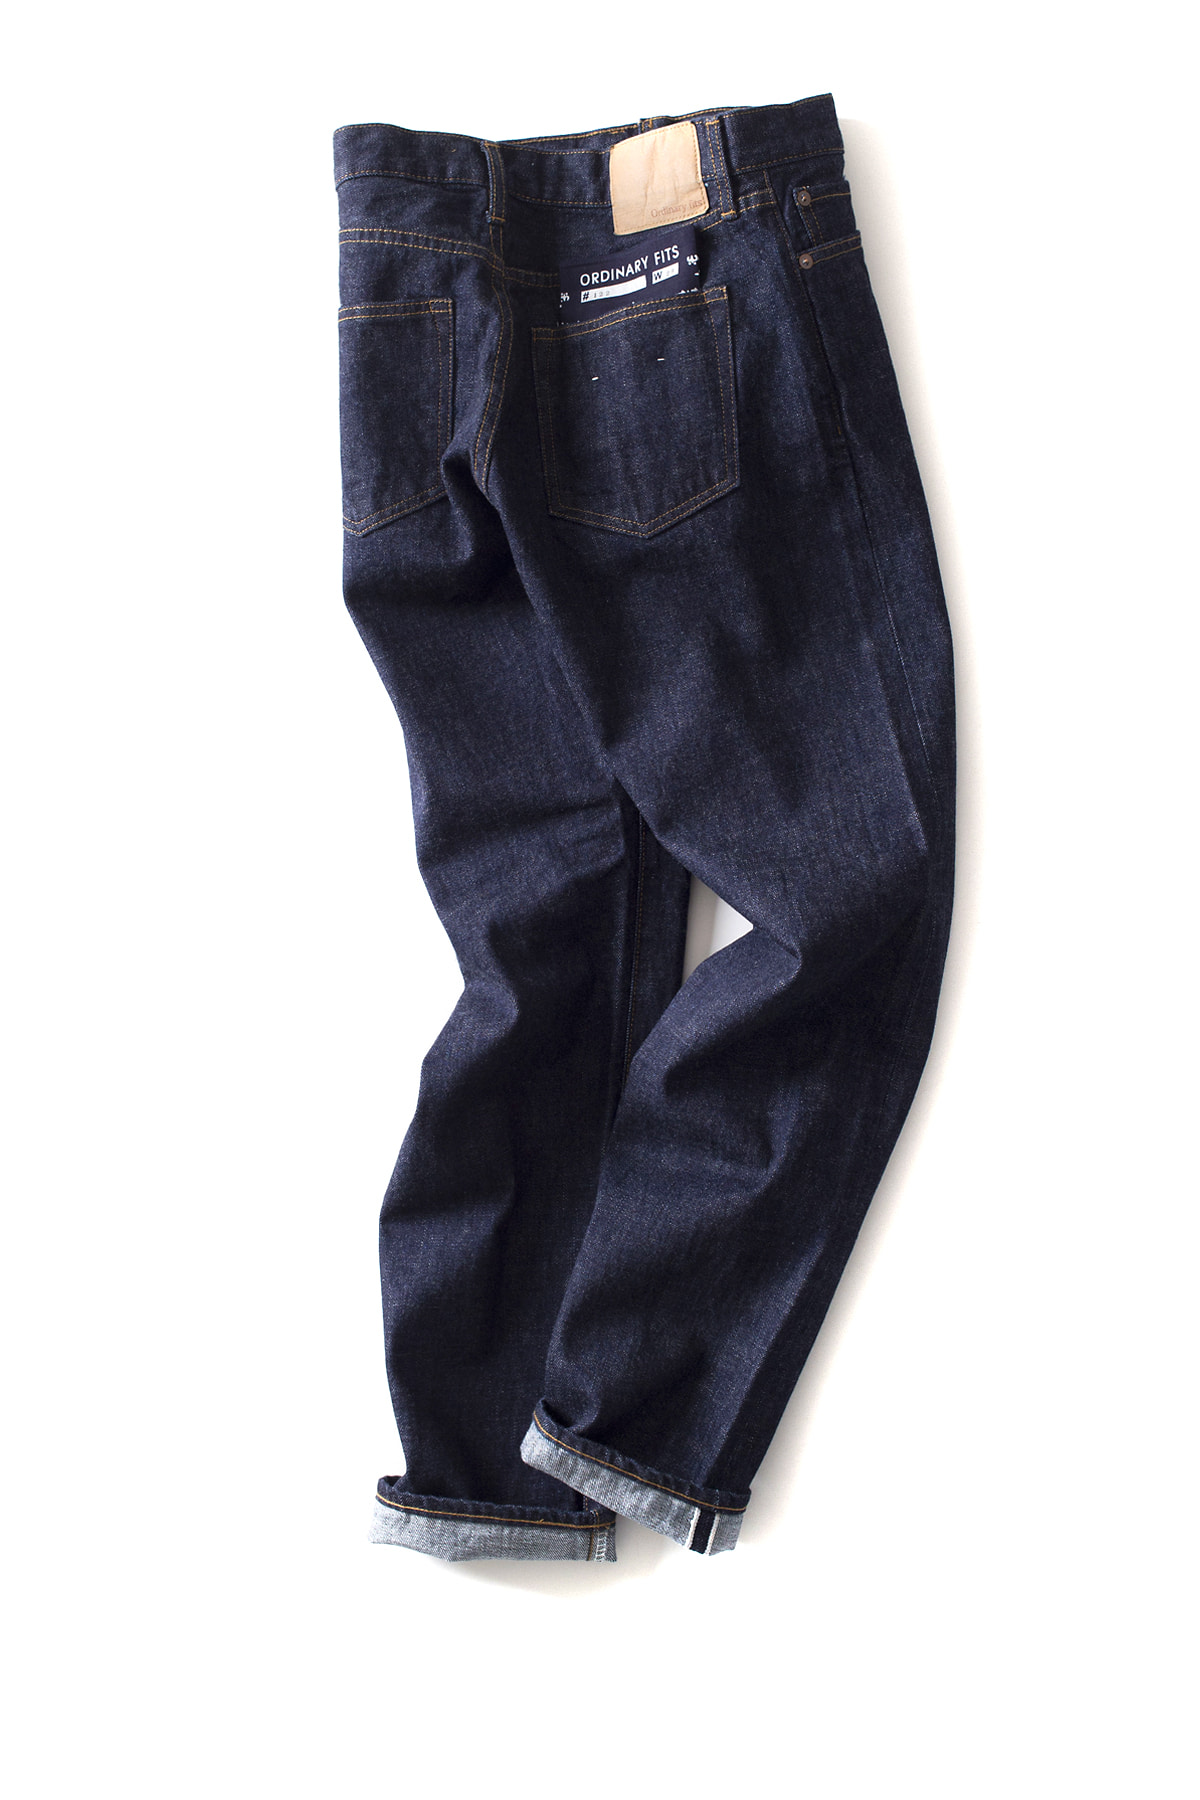 ordinary fits : New Roll Up 5P Denim One Wash (Indigo)